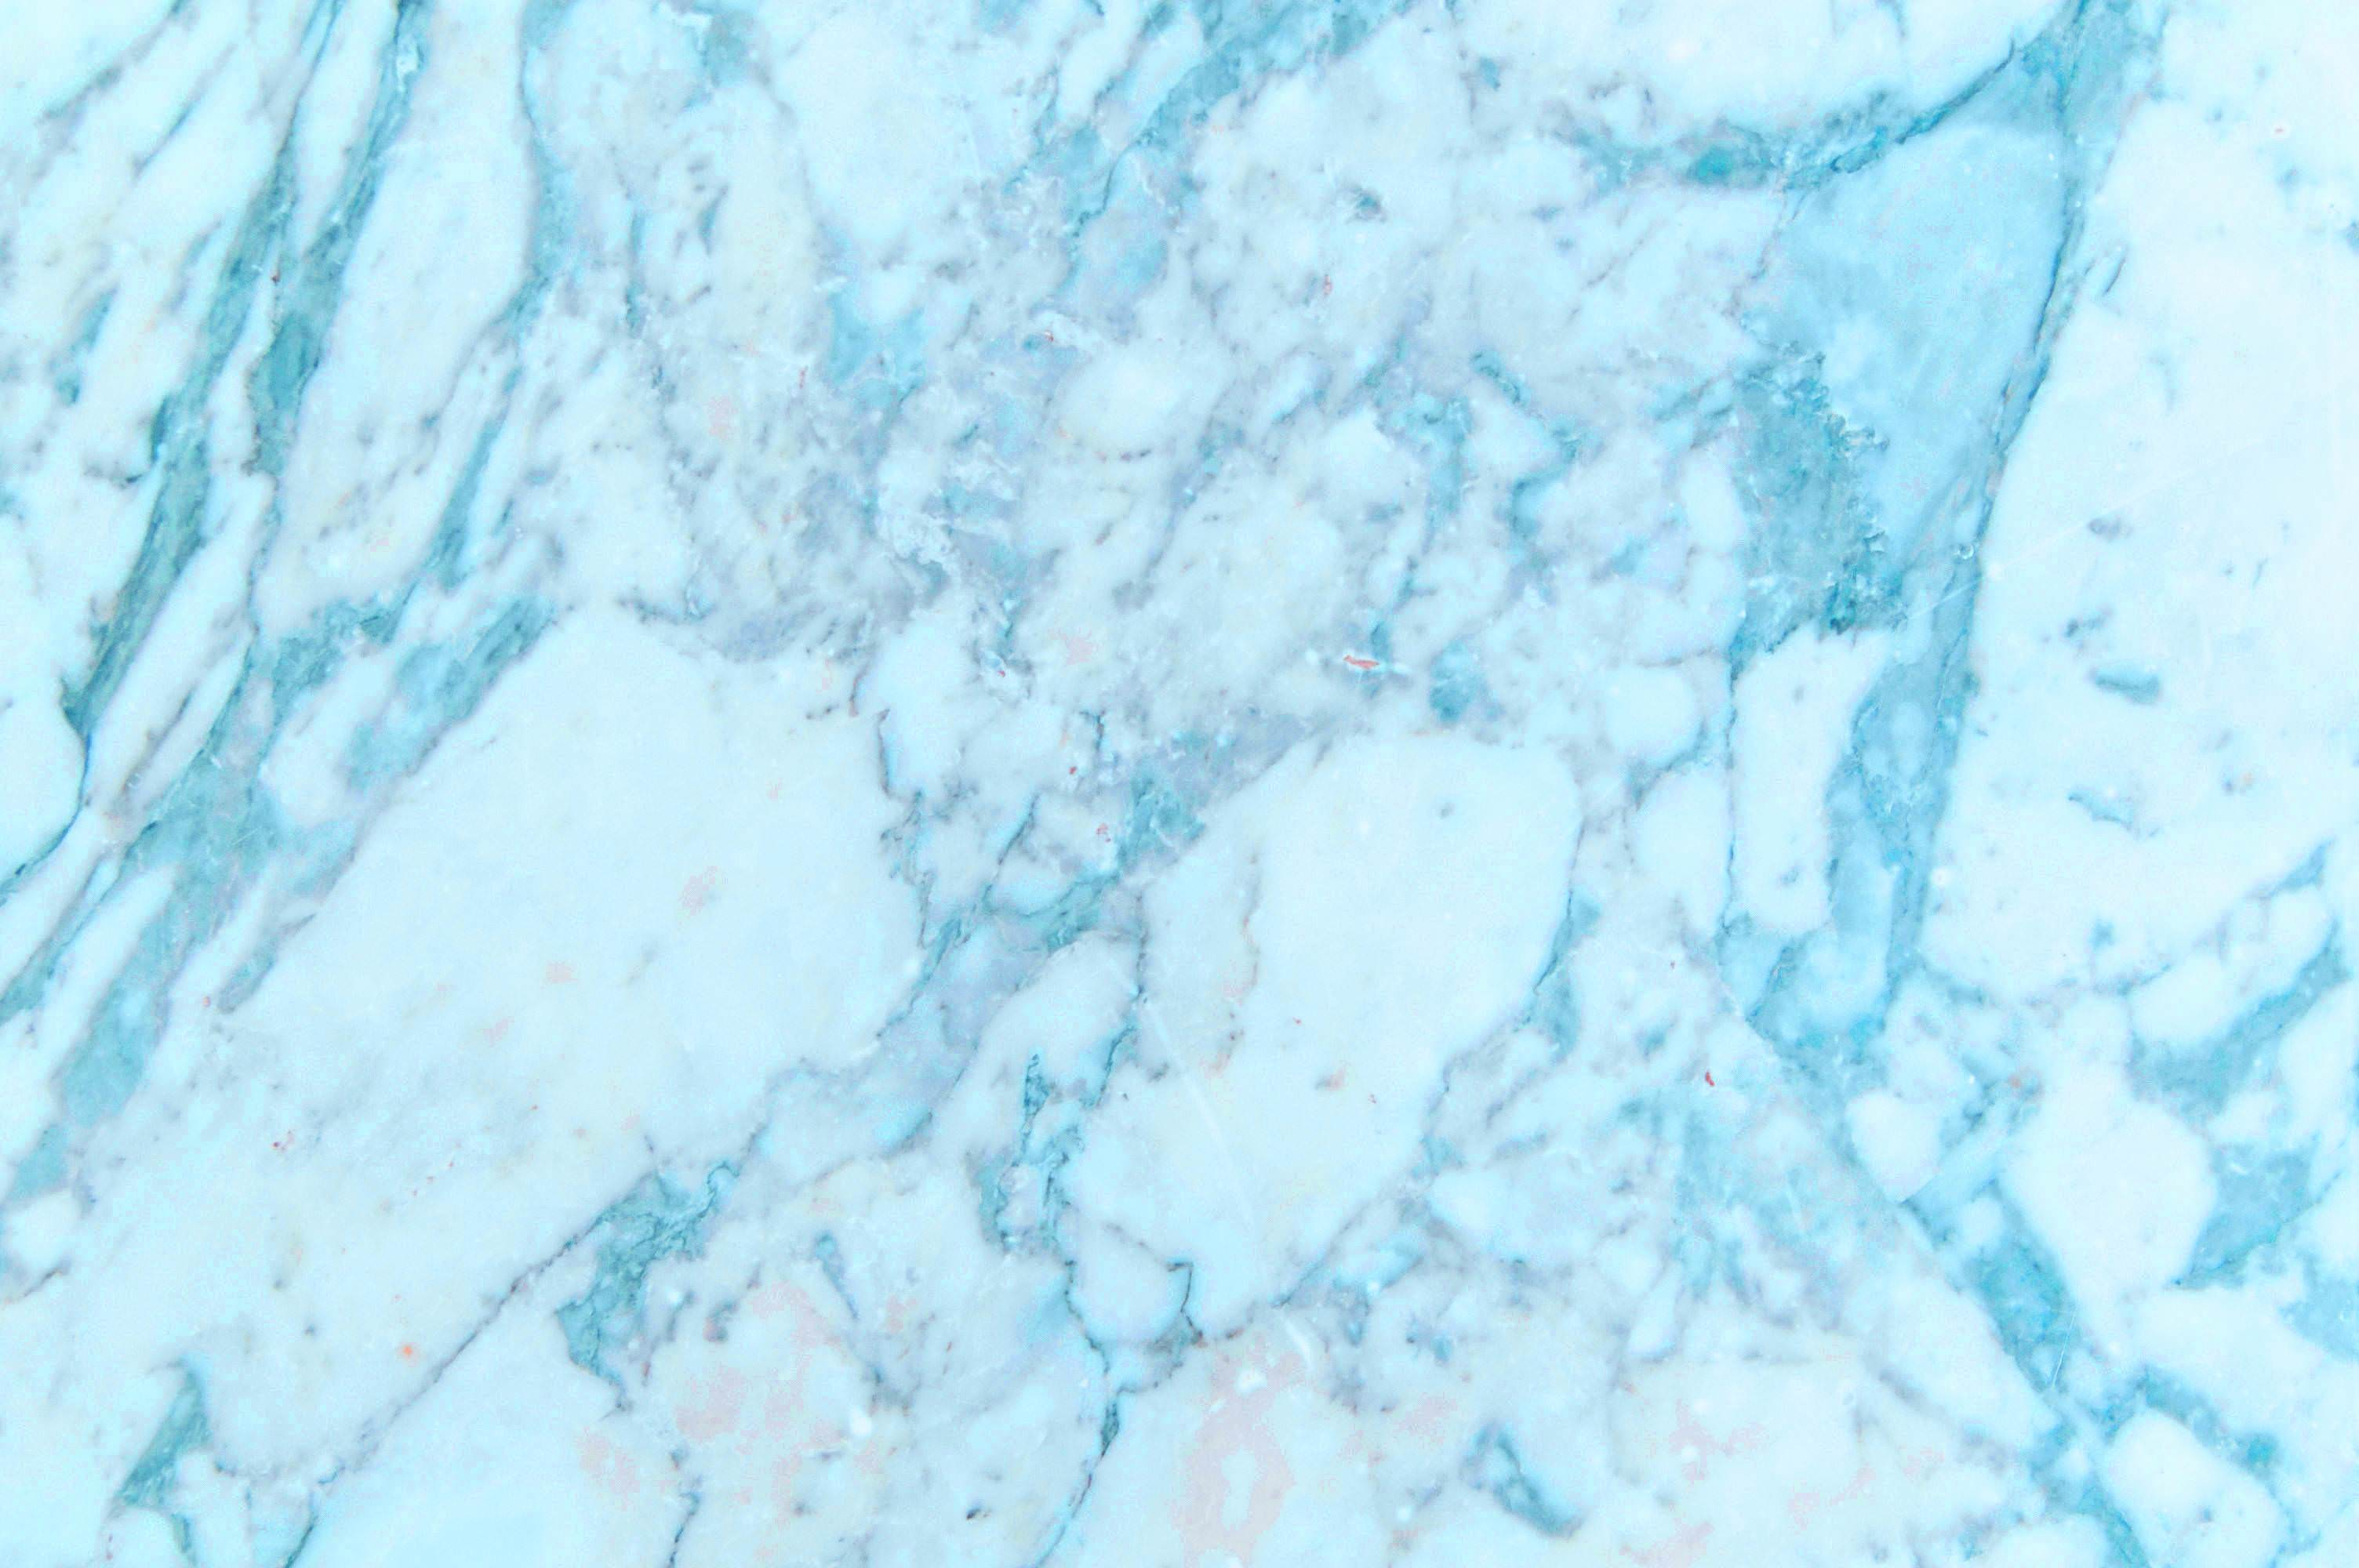 Free Downloads Blue Marble Aesthetic Backgrounds 3118420 Hd Wallpaper Backgrounds Download